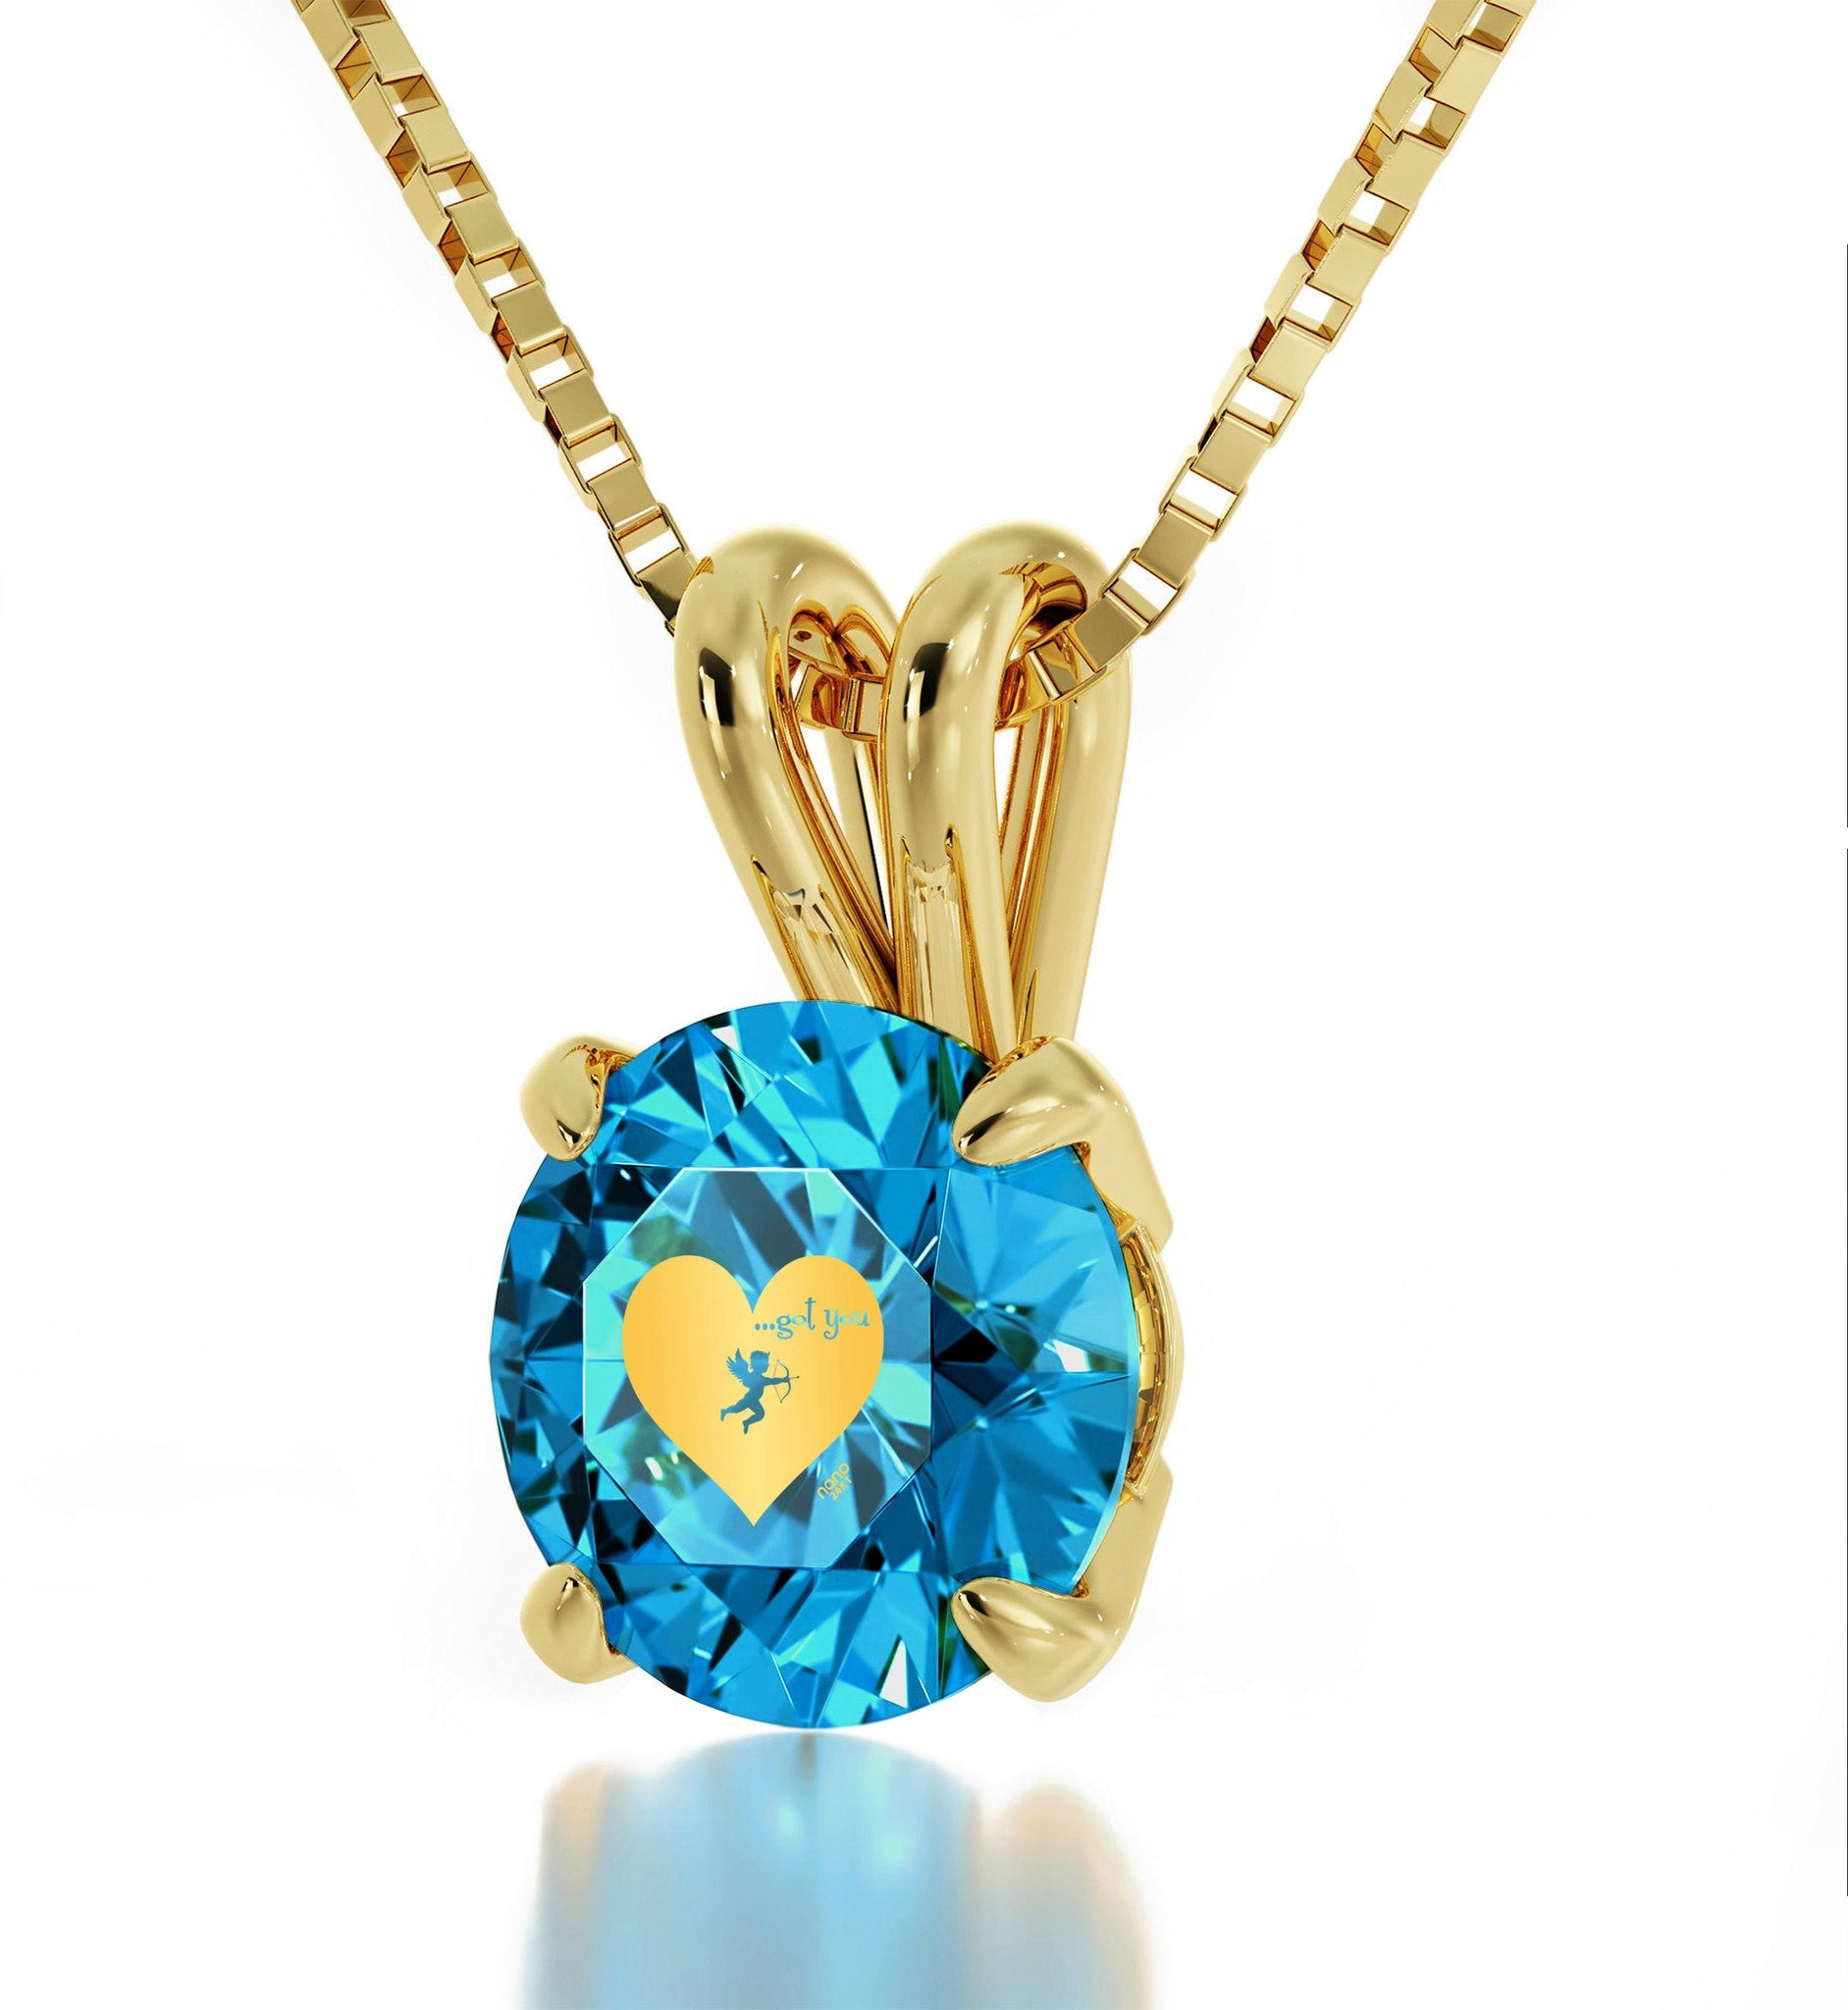 """What to Get Girlfriend for Christmas, Unique Necklace with ""...Got You"" Blue Charm, Mother's Day Gifts for Wife"""